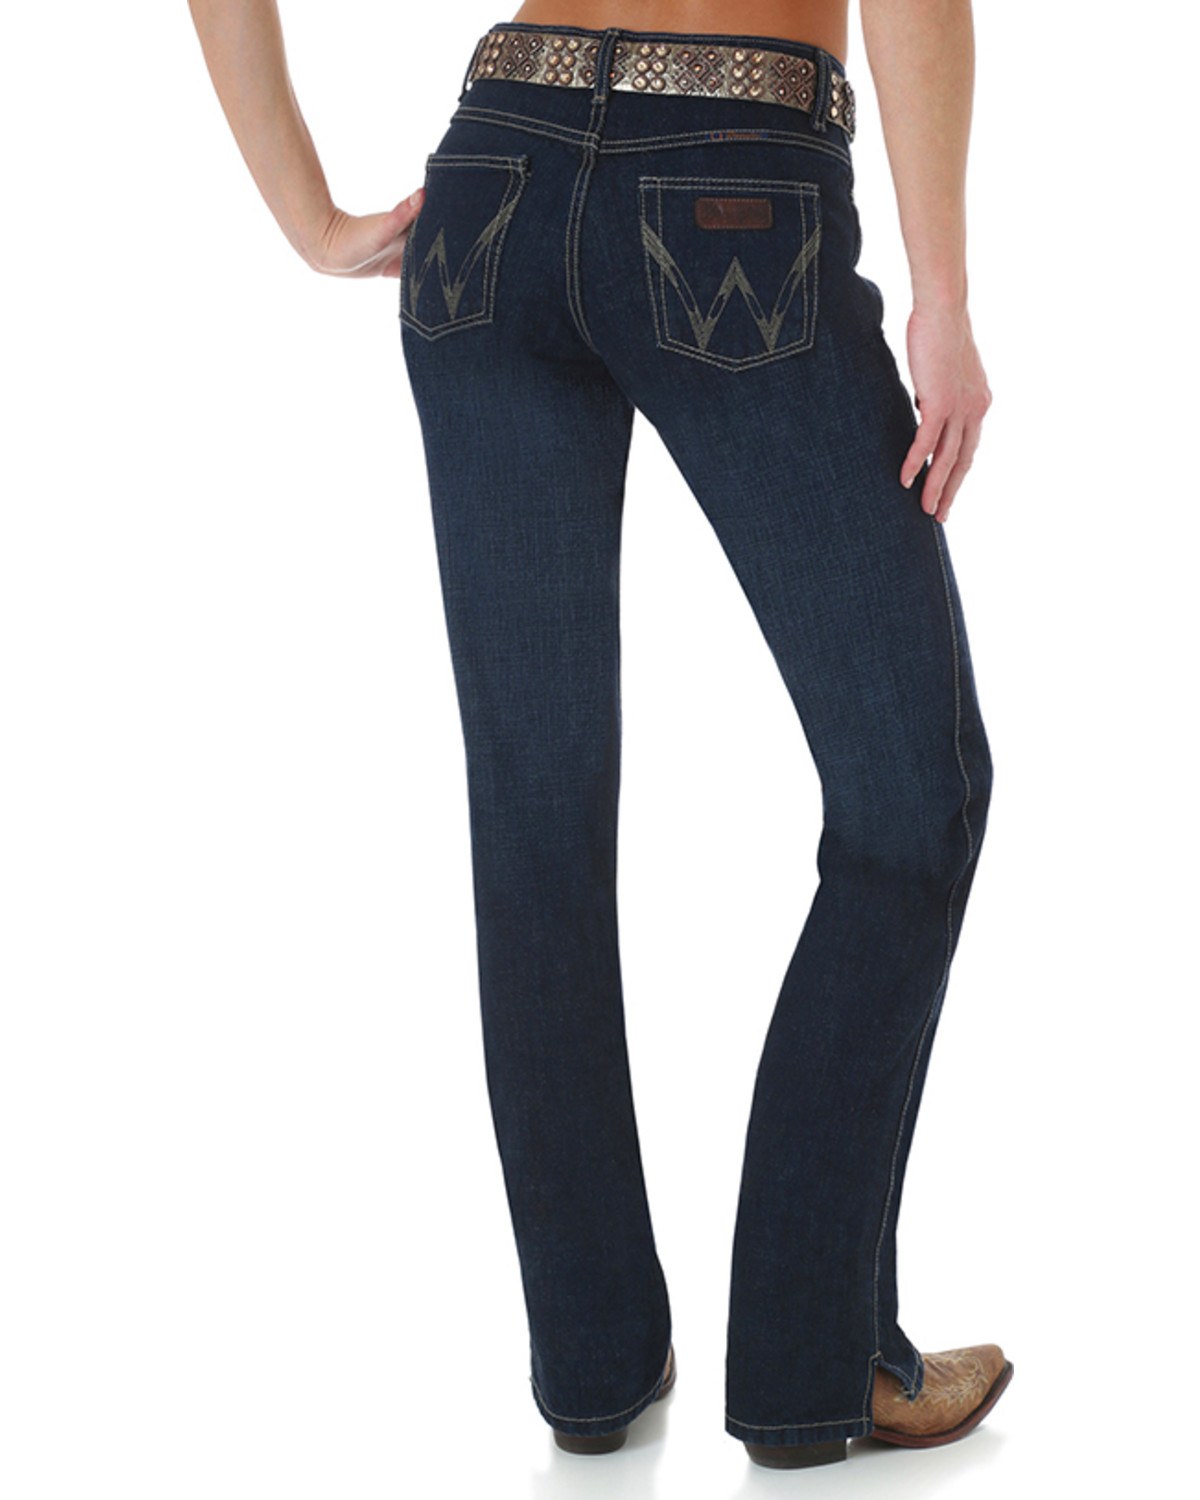 b7eb75a2 Zoomed Image Wrangler Women's Cash Vented Boot Cut Ultimate Riding Jeans,  Blue, ...